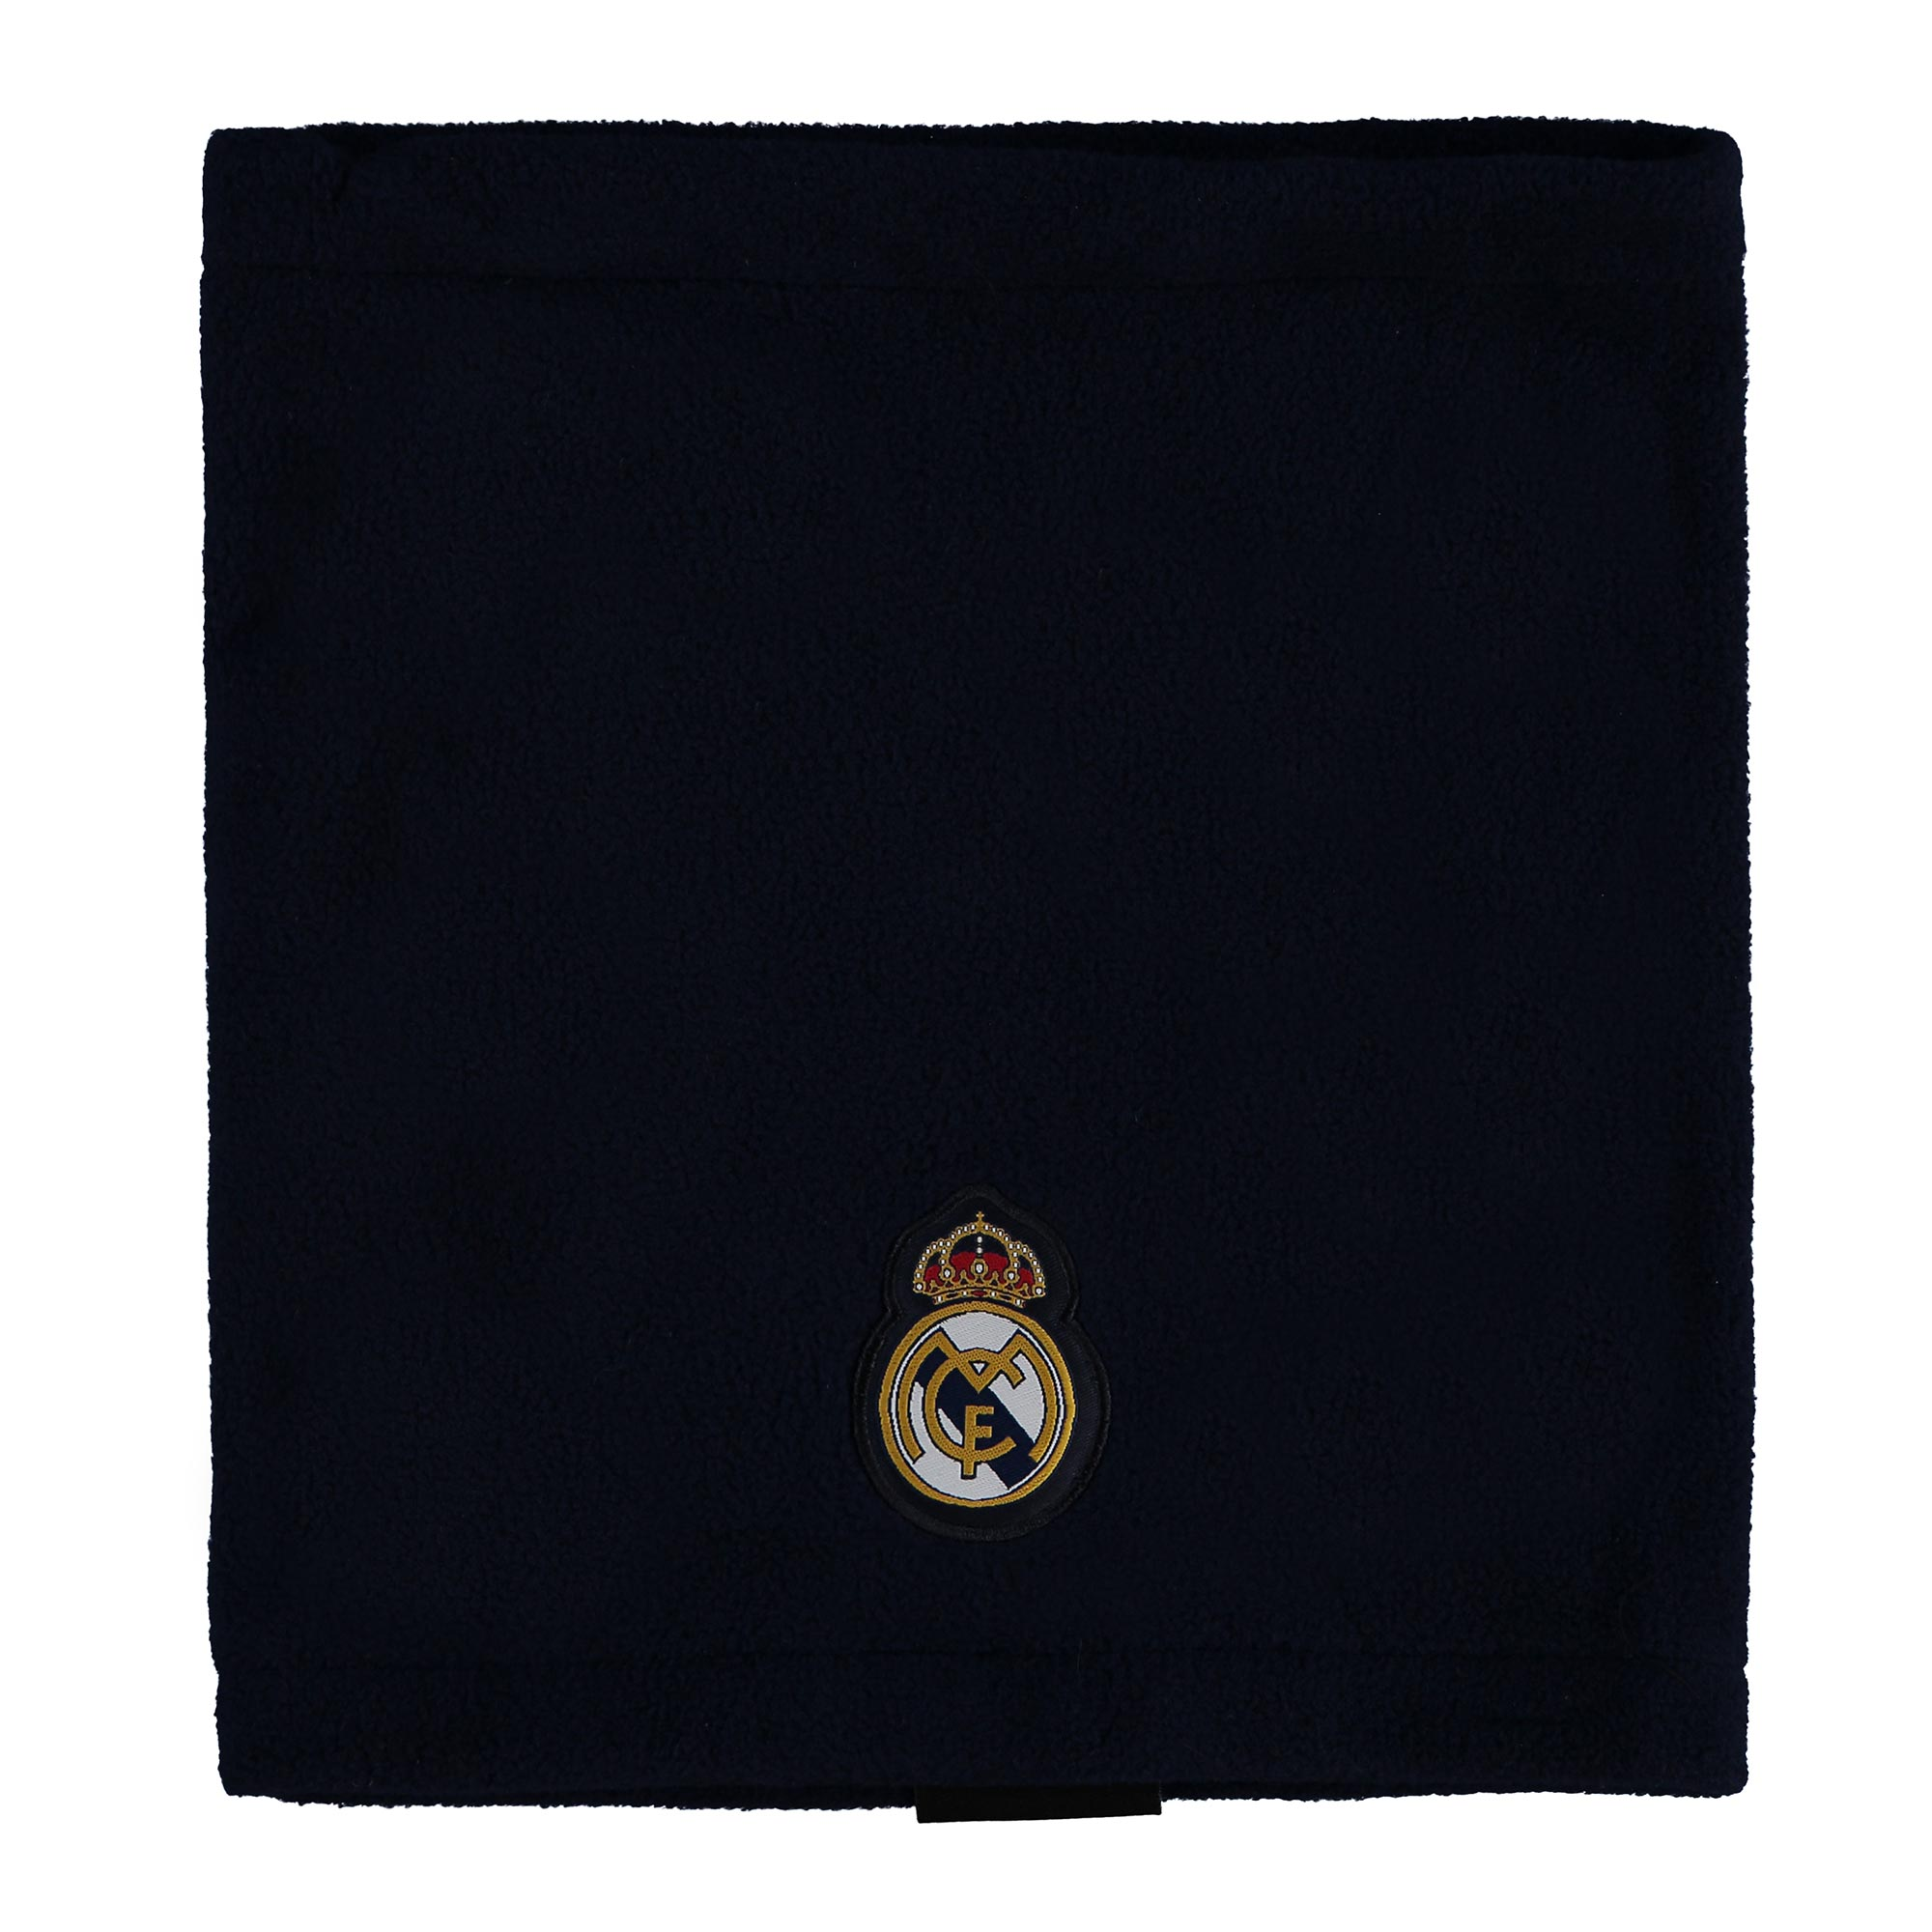 Image of Real Madrid 2 in 1 Neck Warmer and Hat - Navy - Adult